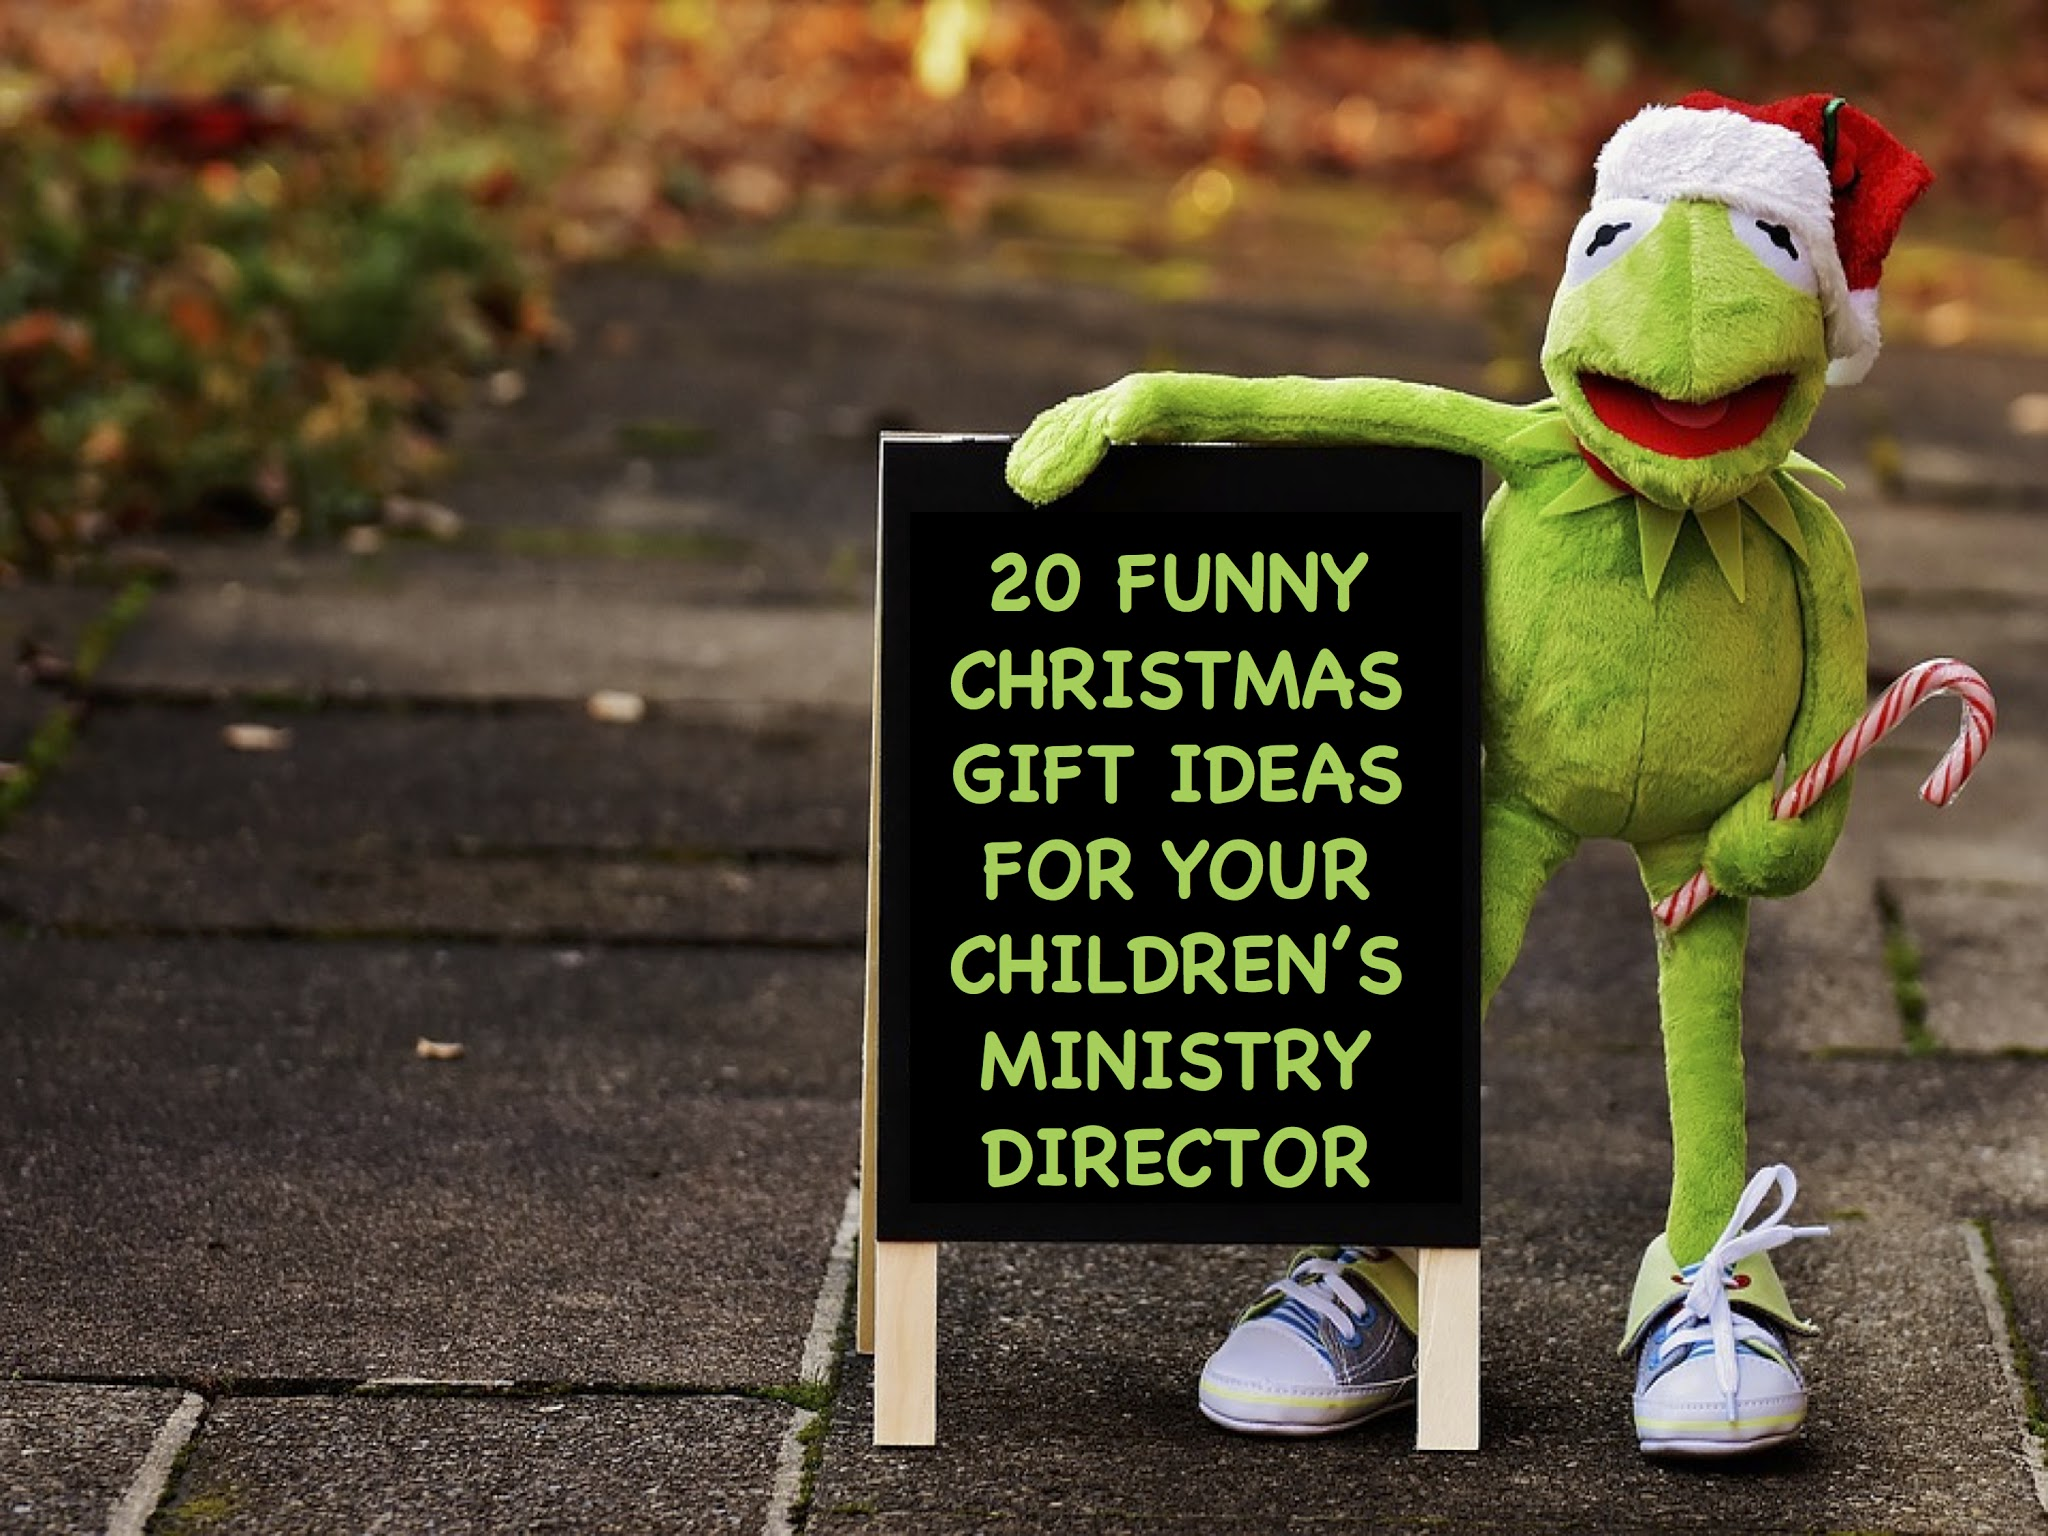 20 Funny Christmas Gift Ideas for Your Children's Ministry ...